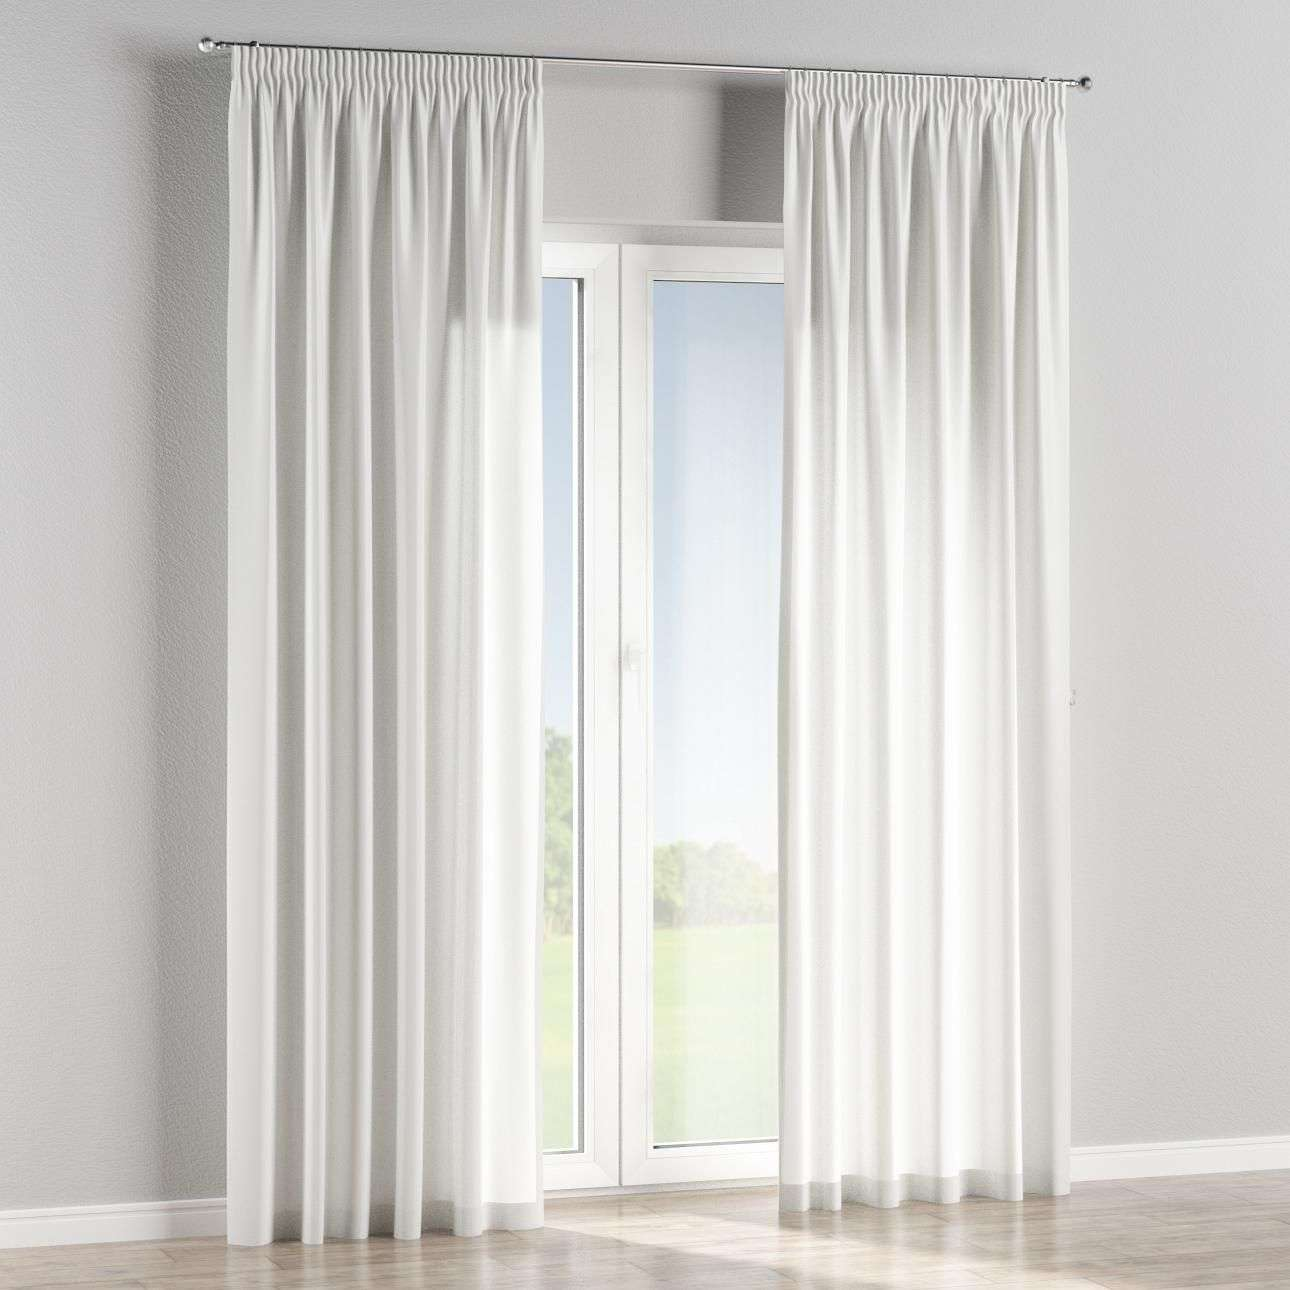 Pencil pleat curtains in collection Cardiff, fabric: 136-31